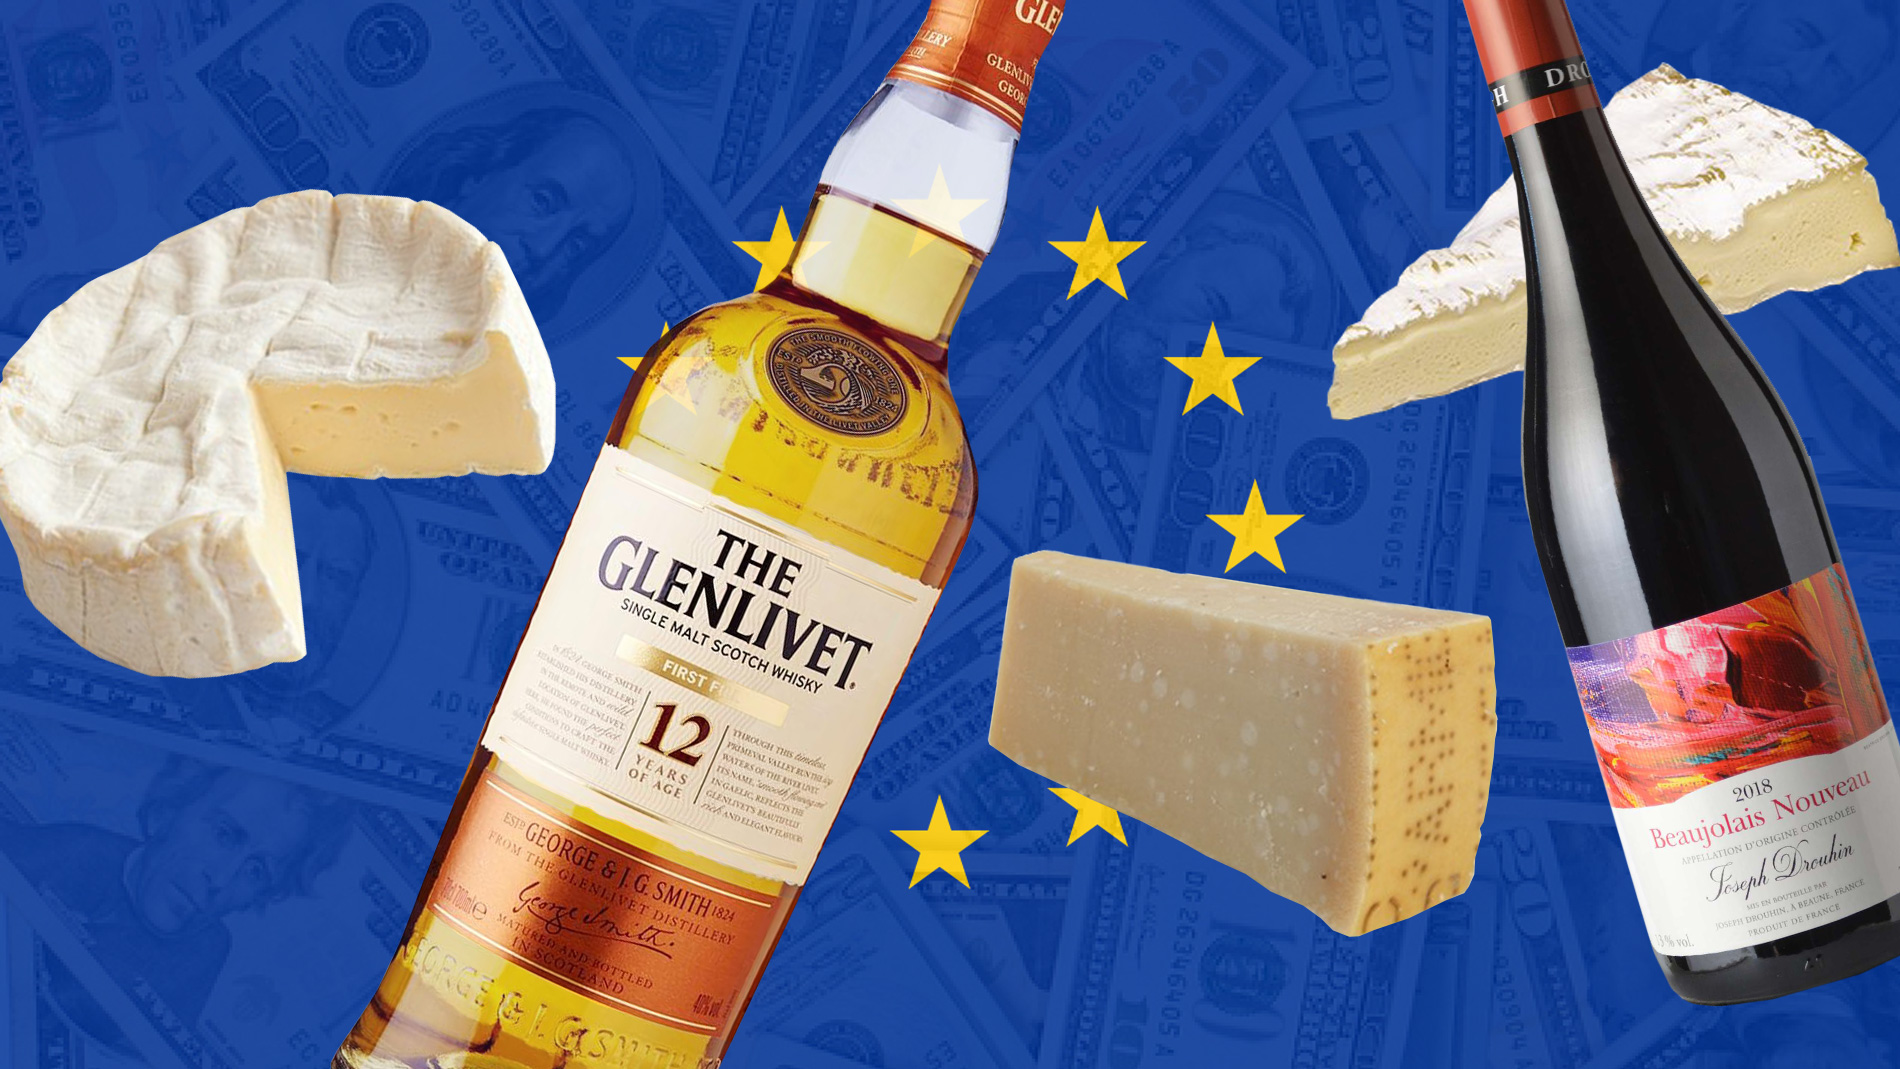 bottles of wine and whiskey and cheese on the background of the eu flag